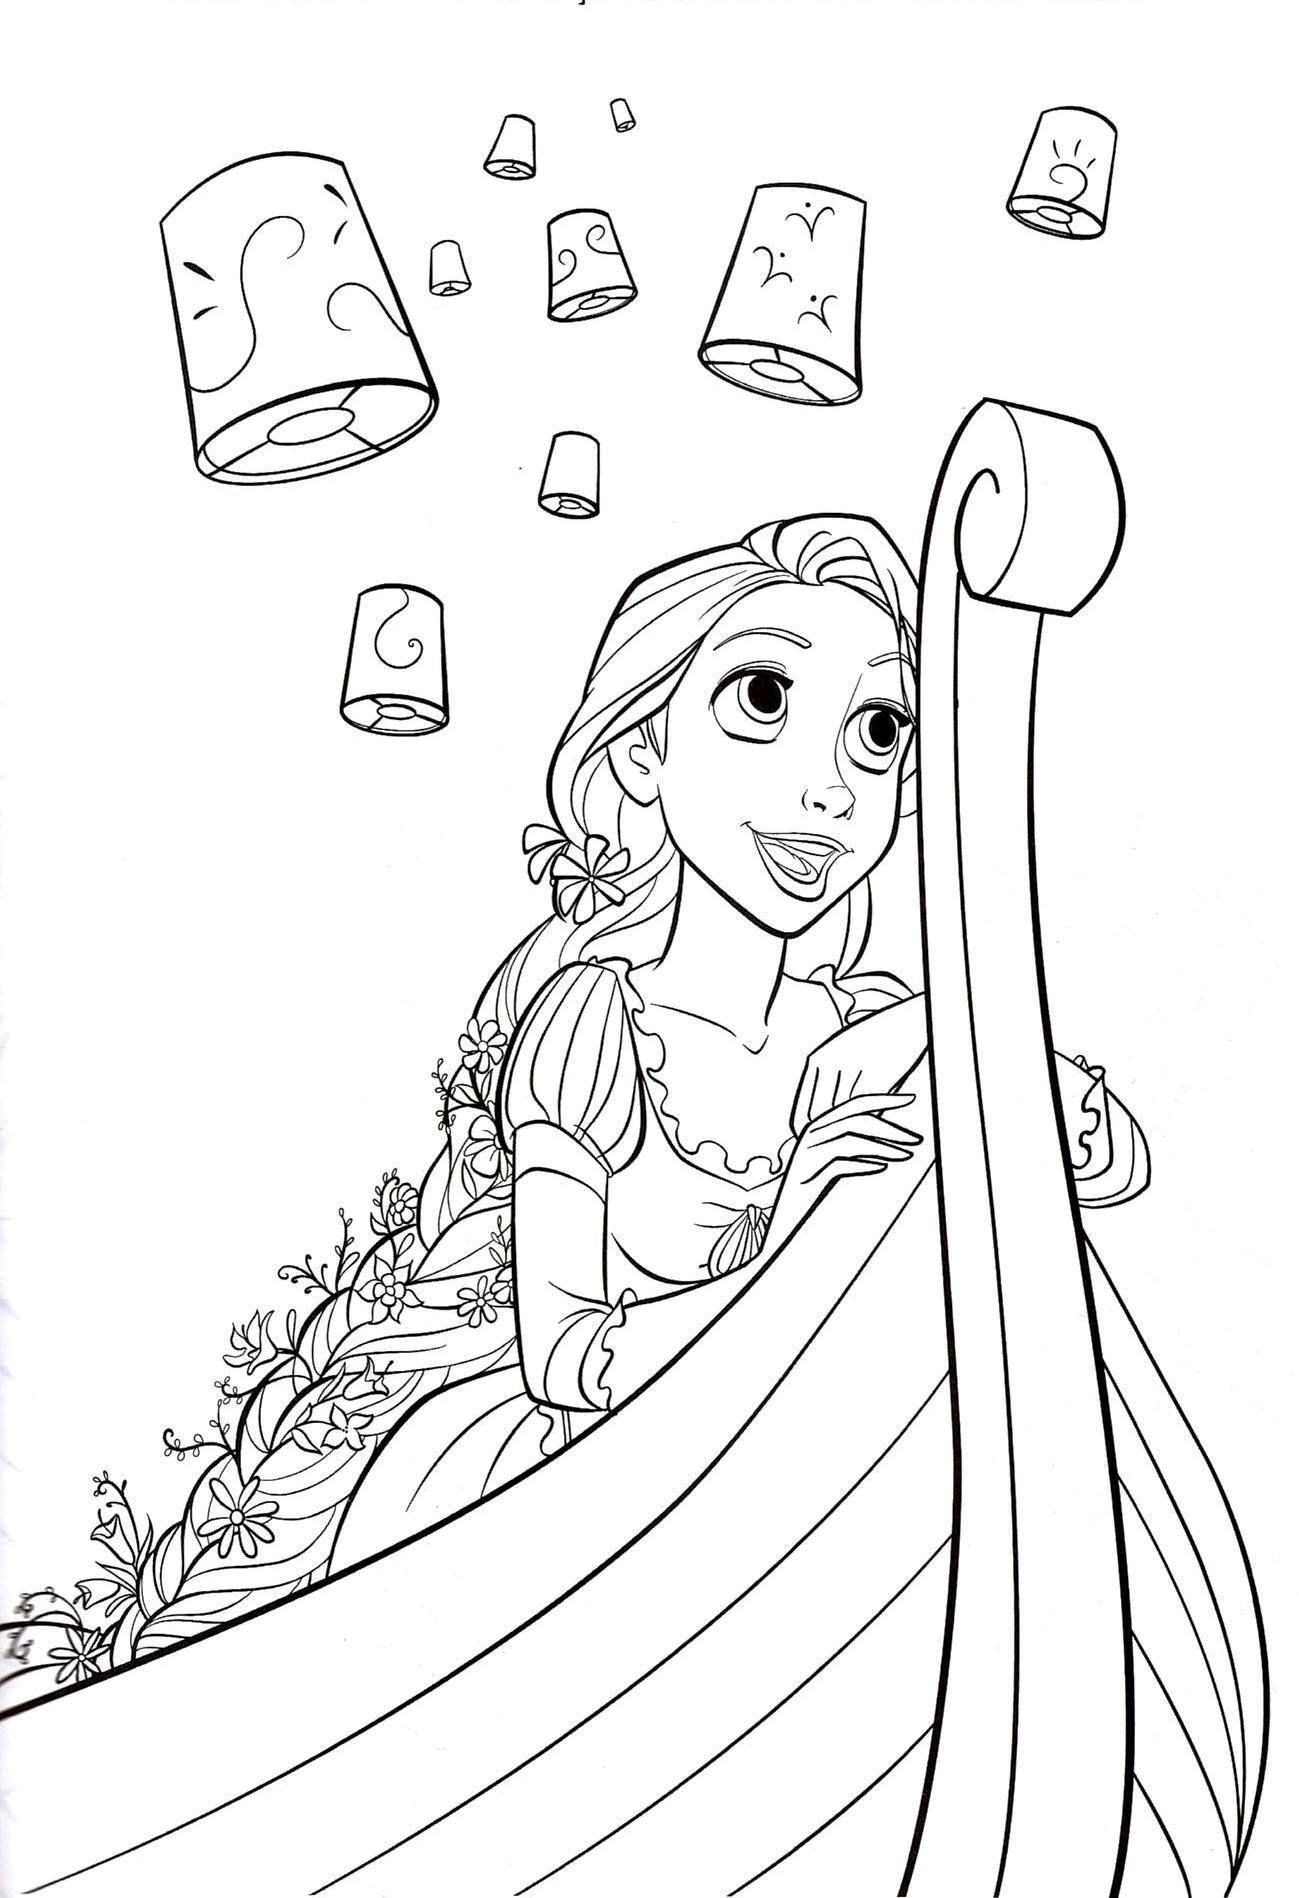 image regarding Rapunzel Printable Coloring Pages named Disney Rapunzel Coloring Web pages Totally free Printable Disney